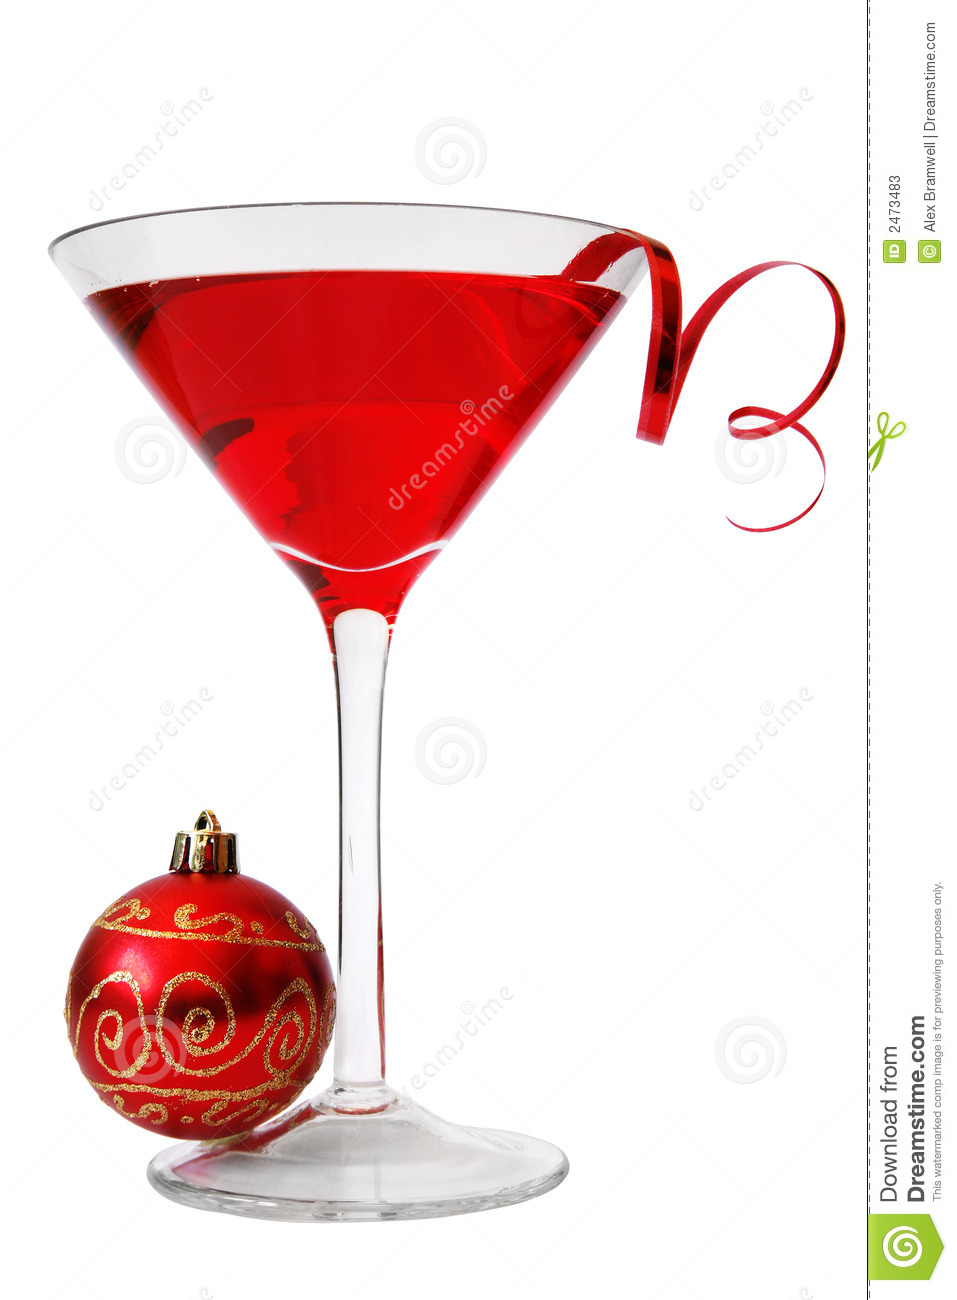 Cocktail clipart holiday cocktail party. Free download best